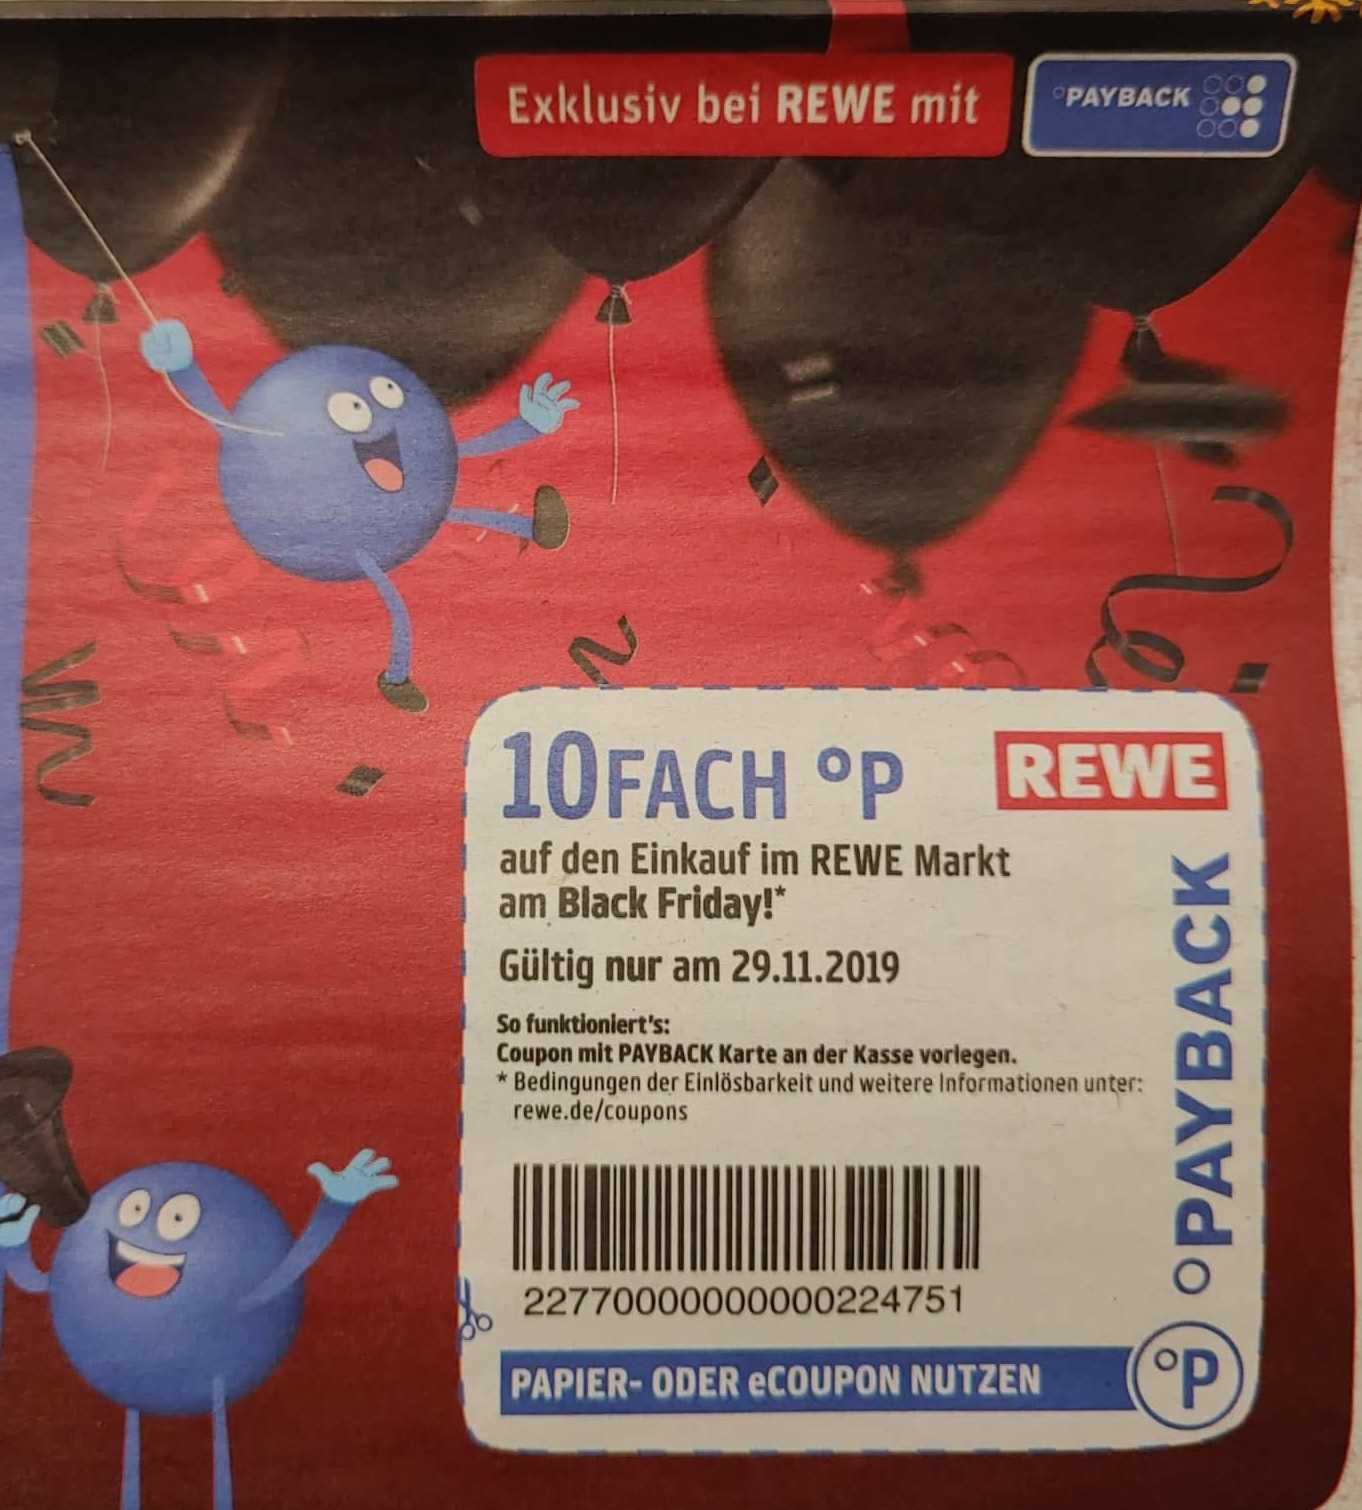 [Payback] 10-fach Payback-Punkte bei REWE 07.01.2020